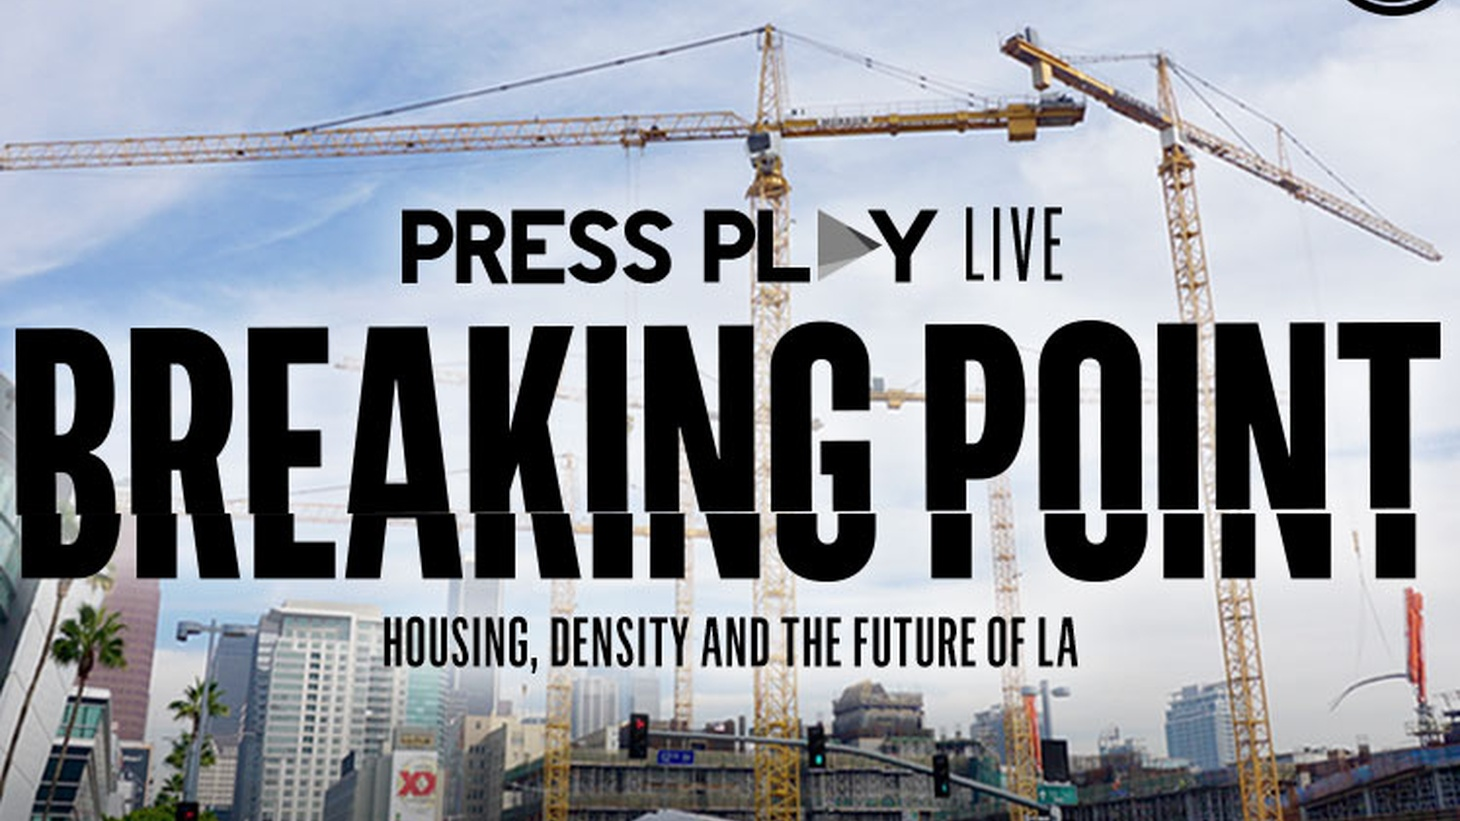 Angelenos will vote next week on Measure S, which restricts development in the city for two years. It's stirred up a heated debate: Should LA build higher, denser developments near public transit, or stay as a network of neighborhoods with single family homes and small apartment buildings?   Press Play hosts a special broadcast live from Hollywood's Barnsdall Gallery Theatre, exploring how the housing crisis in LA has caused an identity crisis for Angelenos.